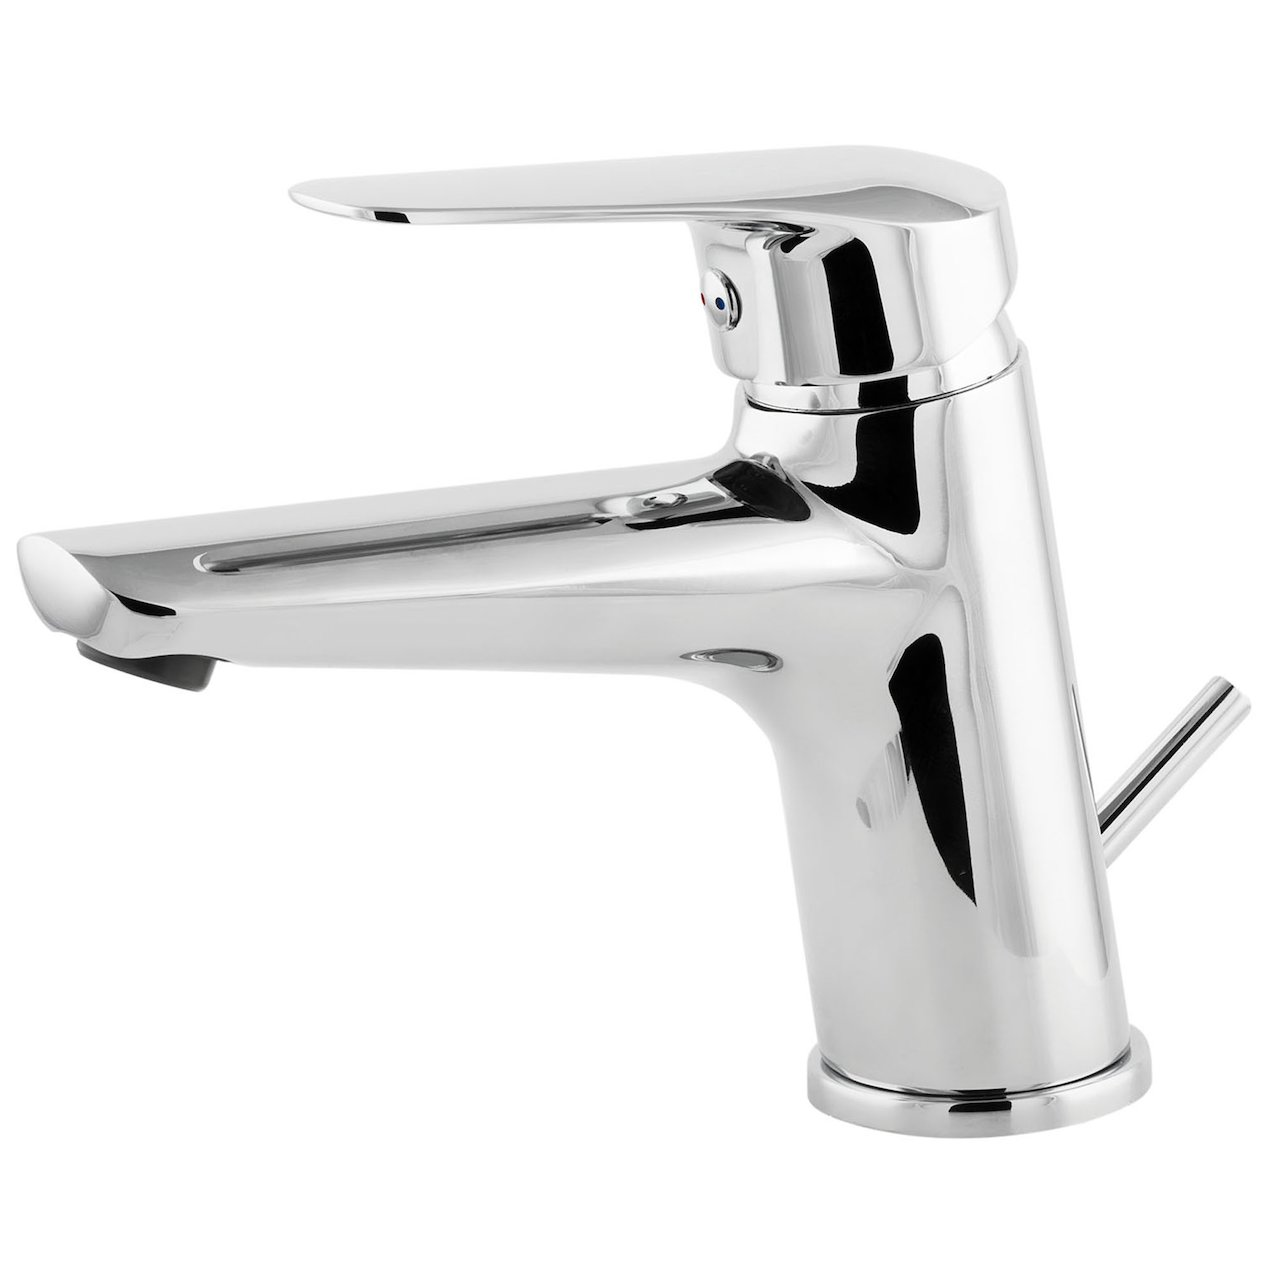 Washbasin Mixer Fusion